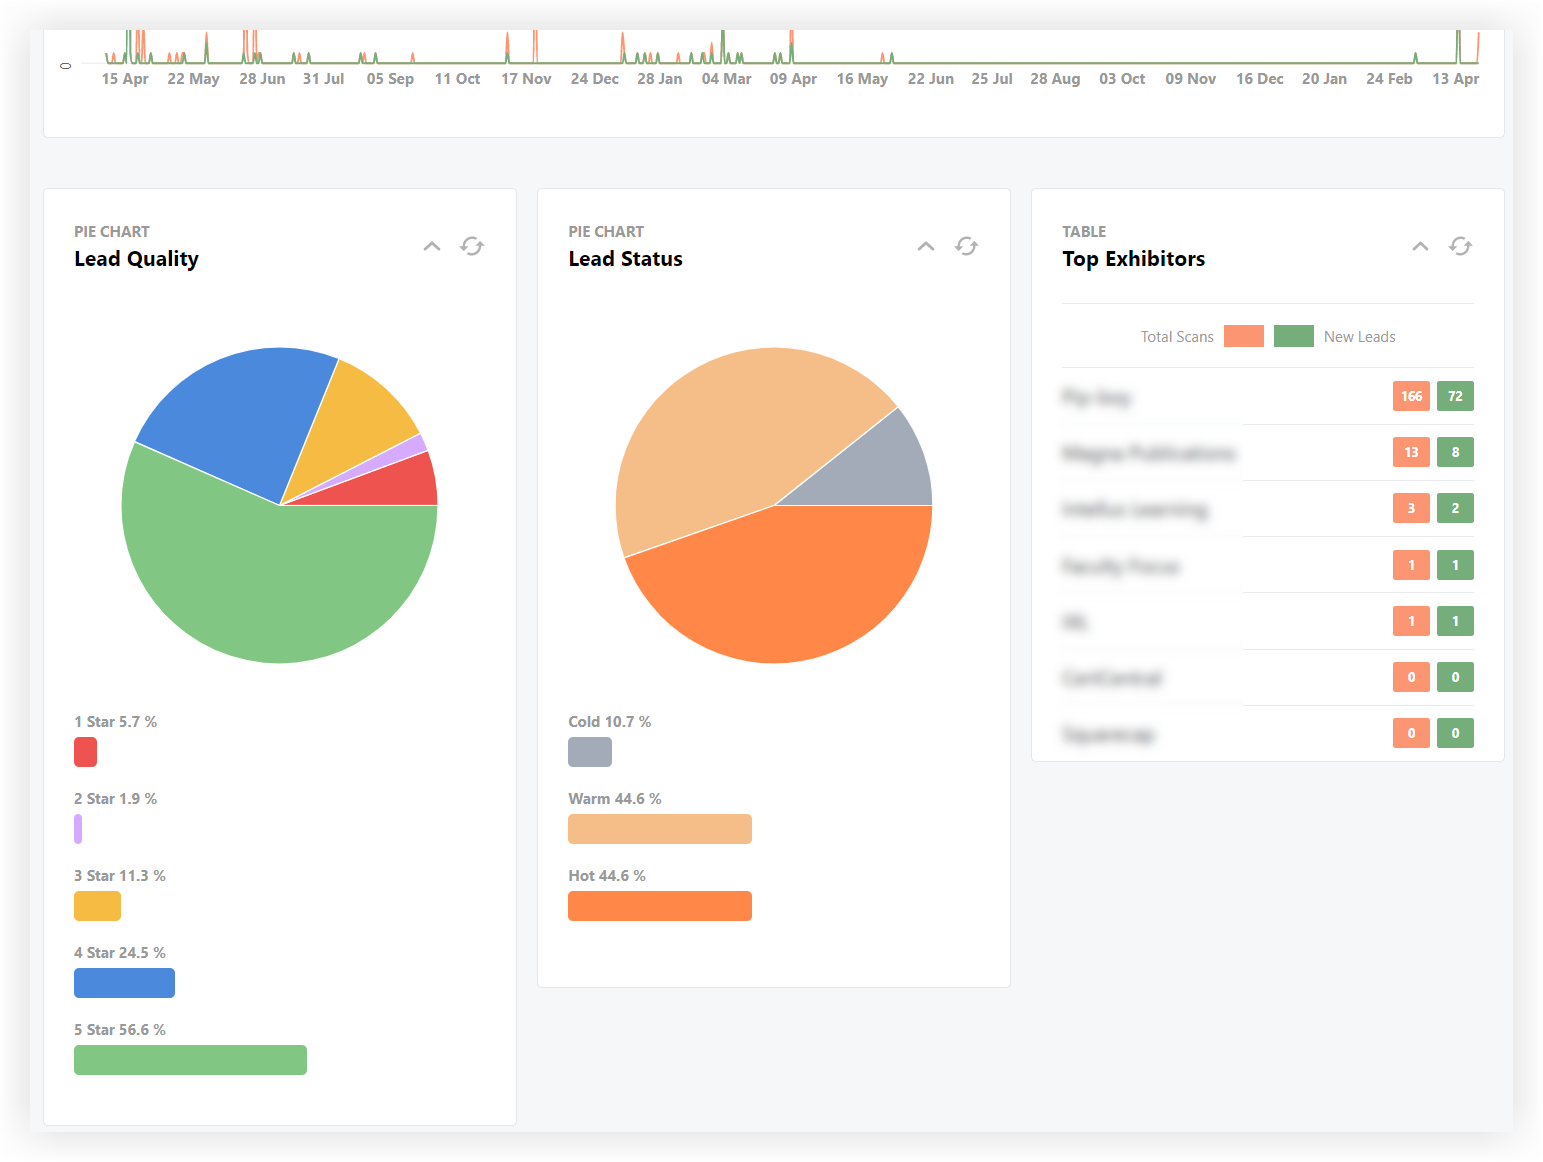 Screenshot of the Lead Quality, Lead Status, and Top Exhibitors charts.